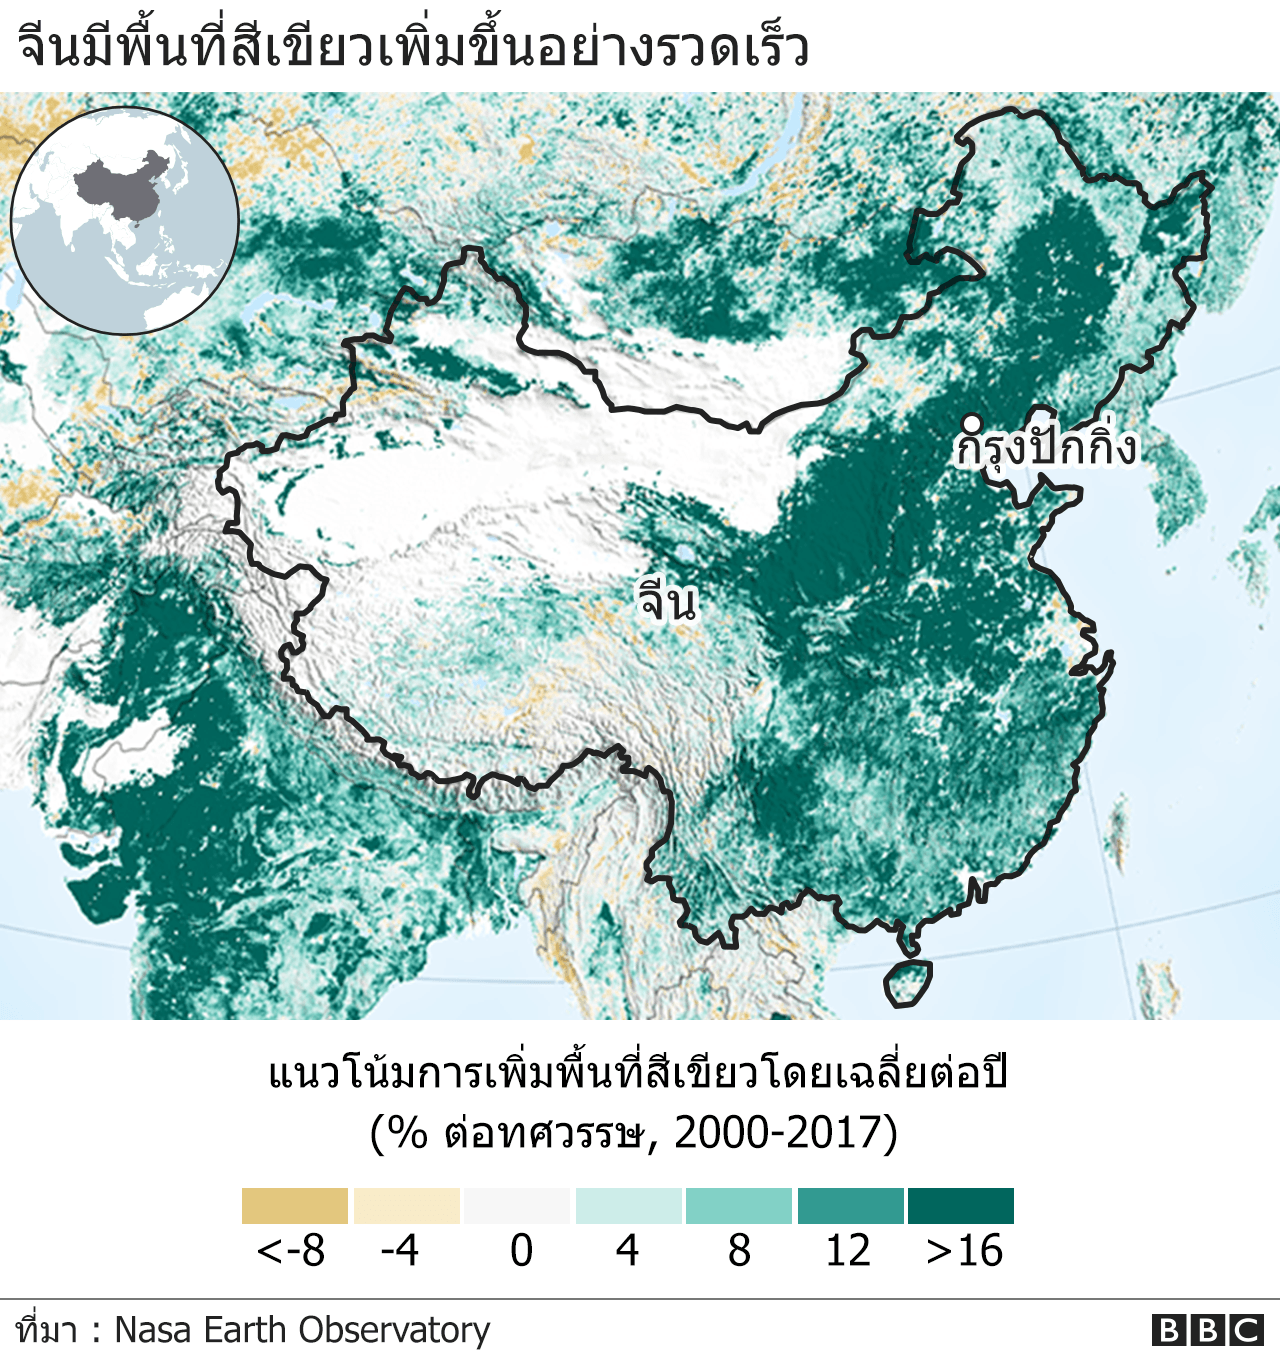 Why does the world rely on China's success in solving climate problems?